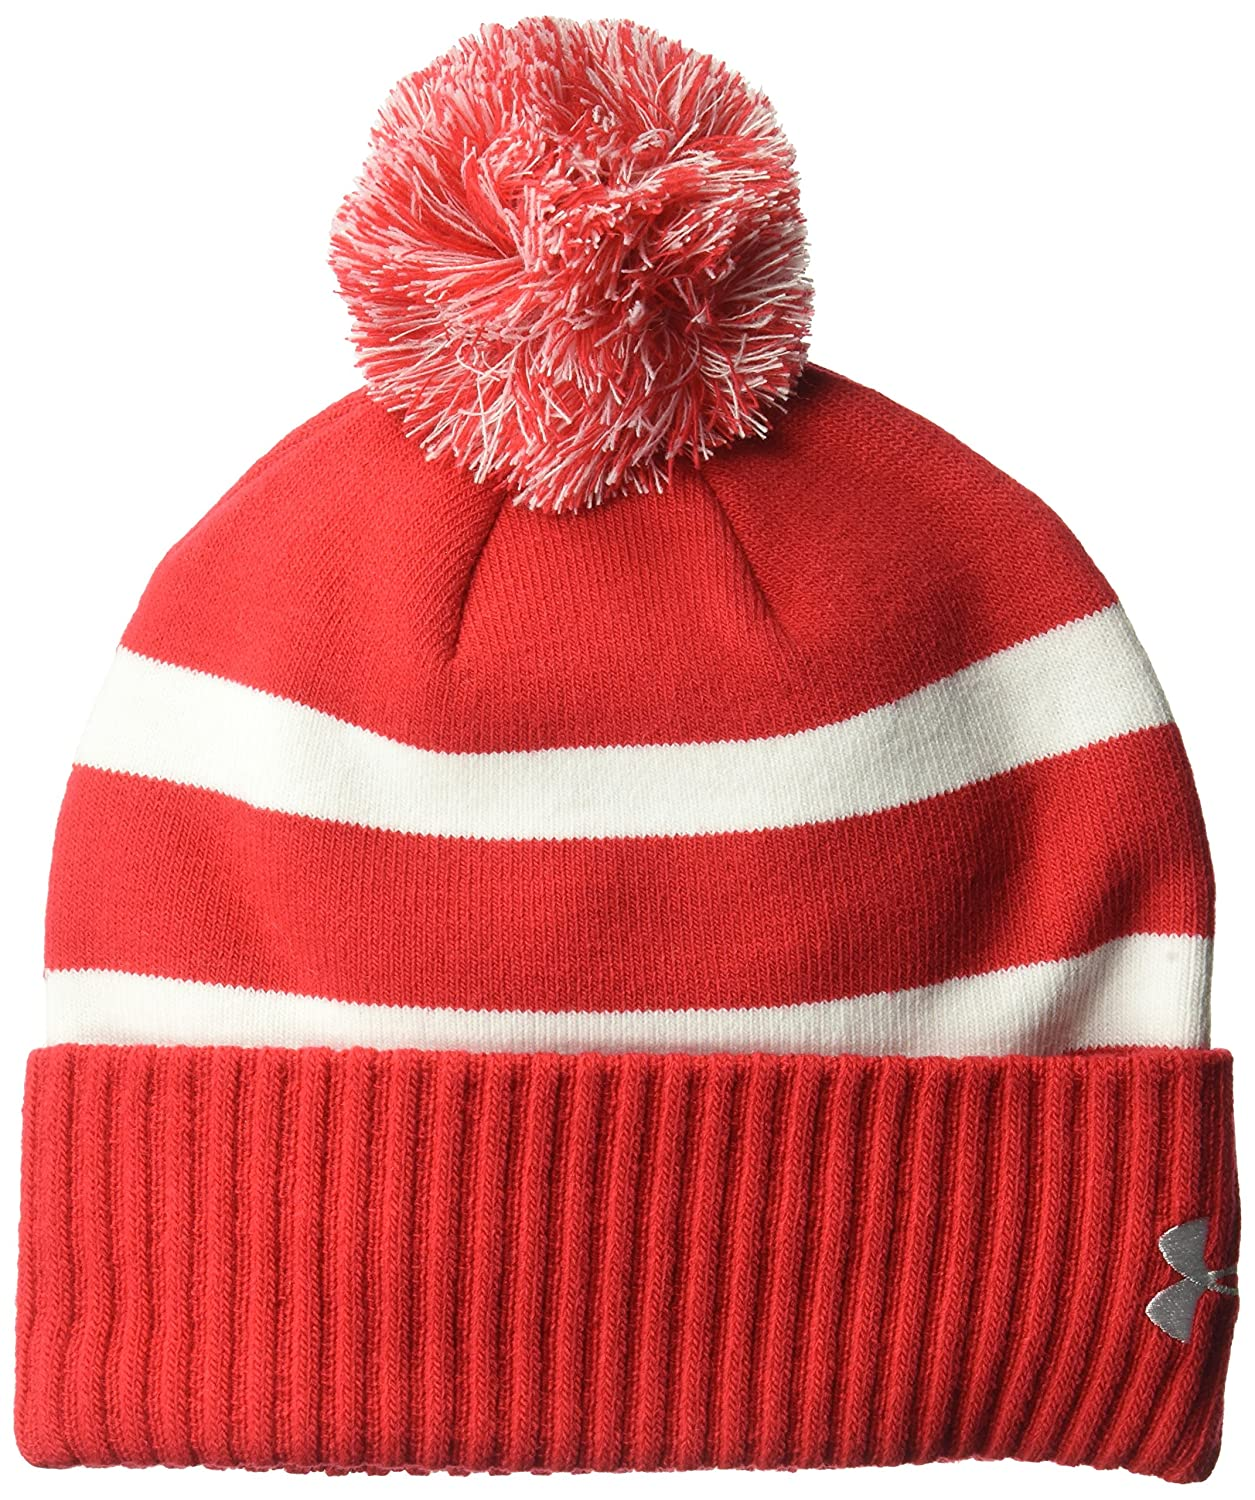 Amazon.com  Under Armour Mens Pom Beanie  Sports   Outdoors 8b806e625d3